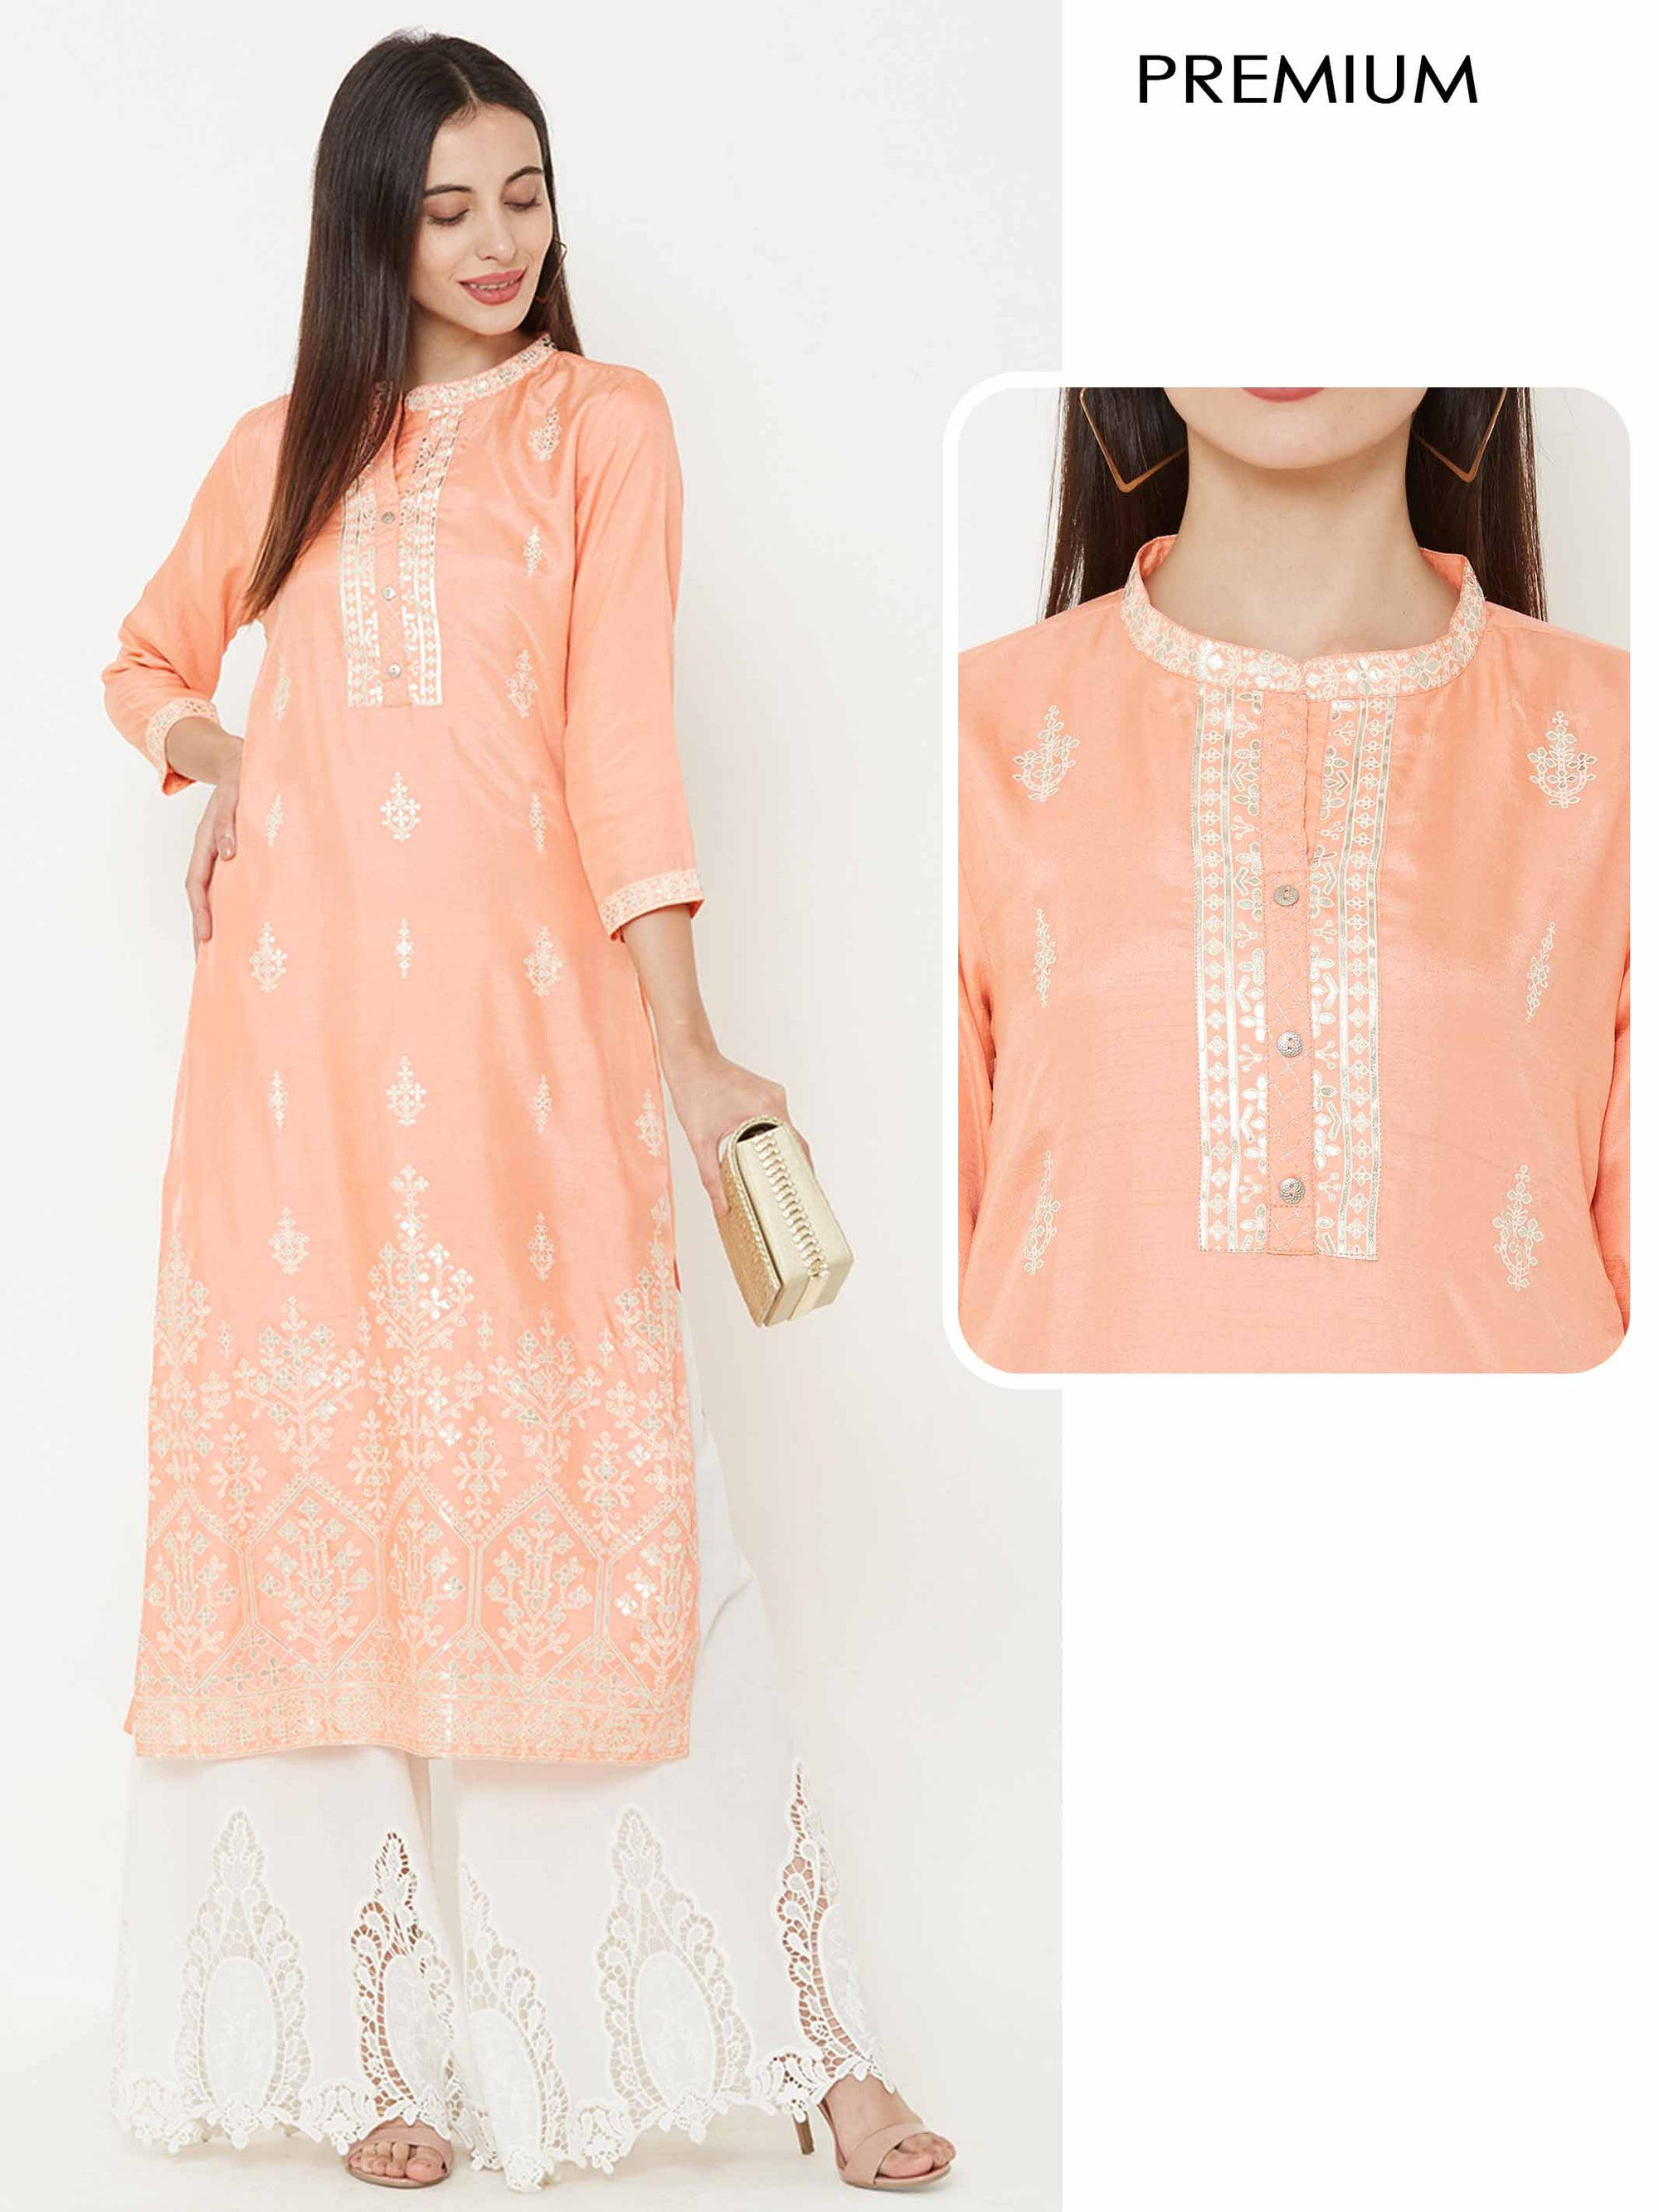 Abstract Printed kurta with crochet lace detailing – Peach